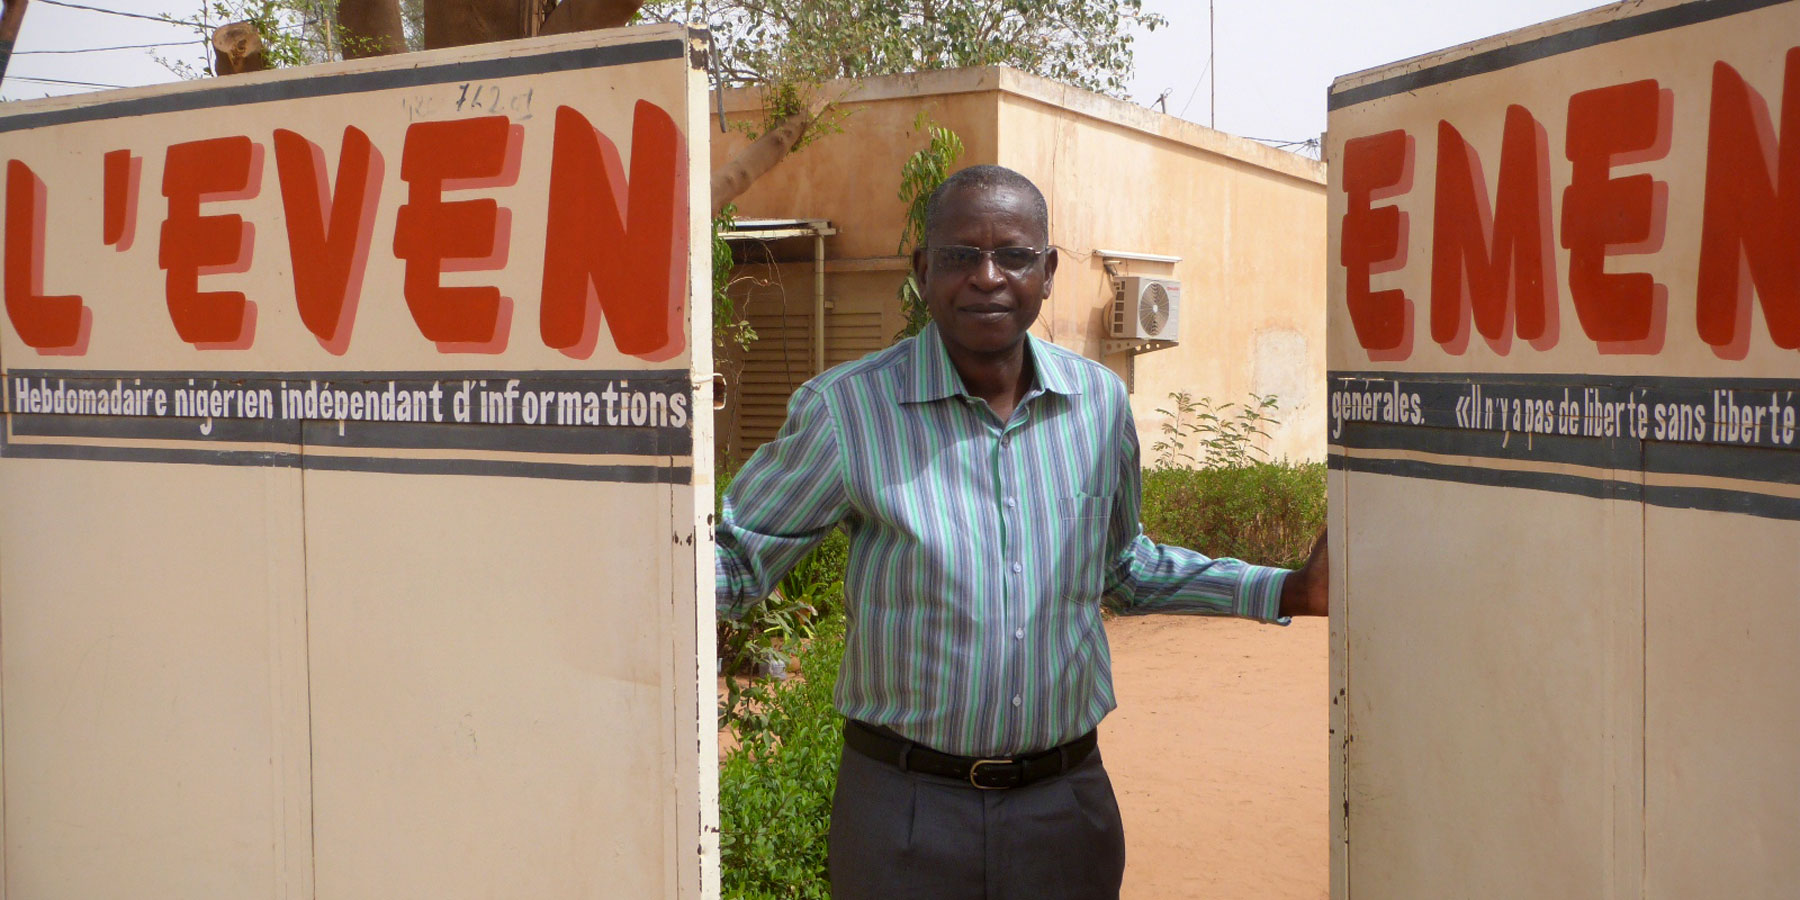 Journalist Moussa Aksar stands at the entrance to his newspaper, L'Evenement, in Niger